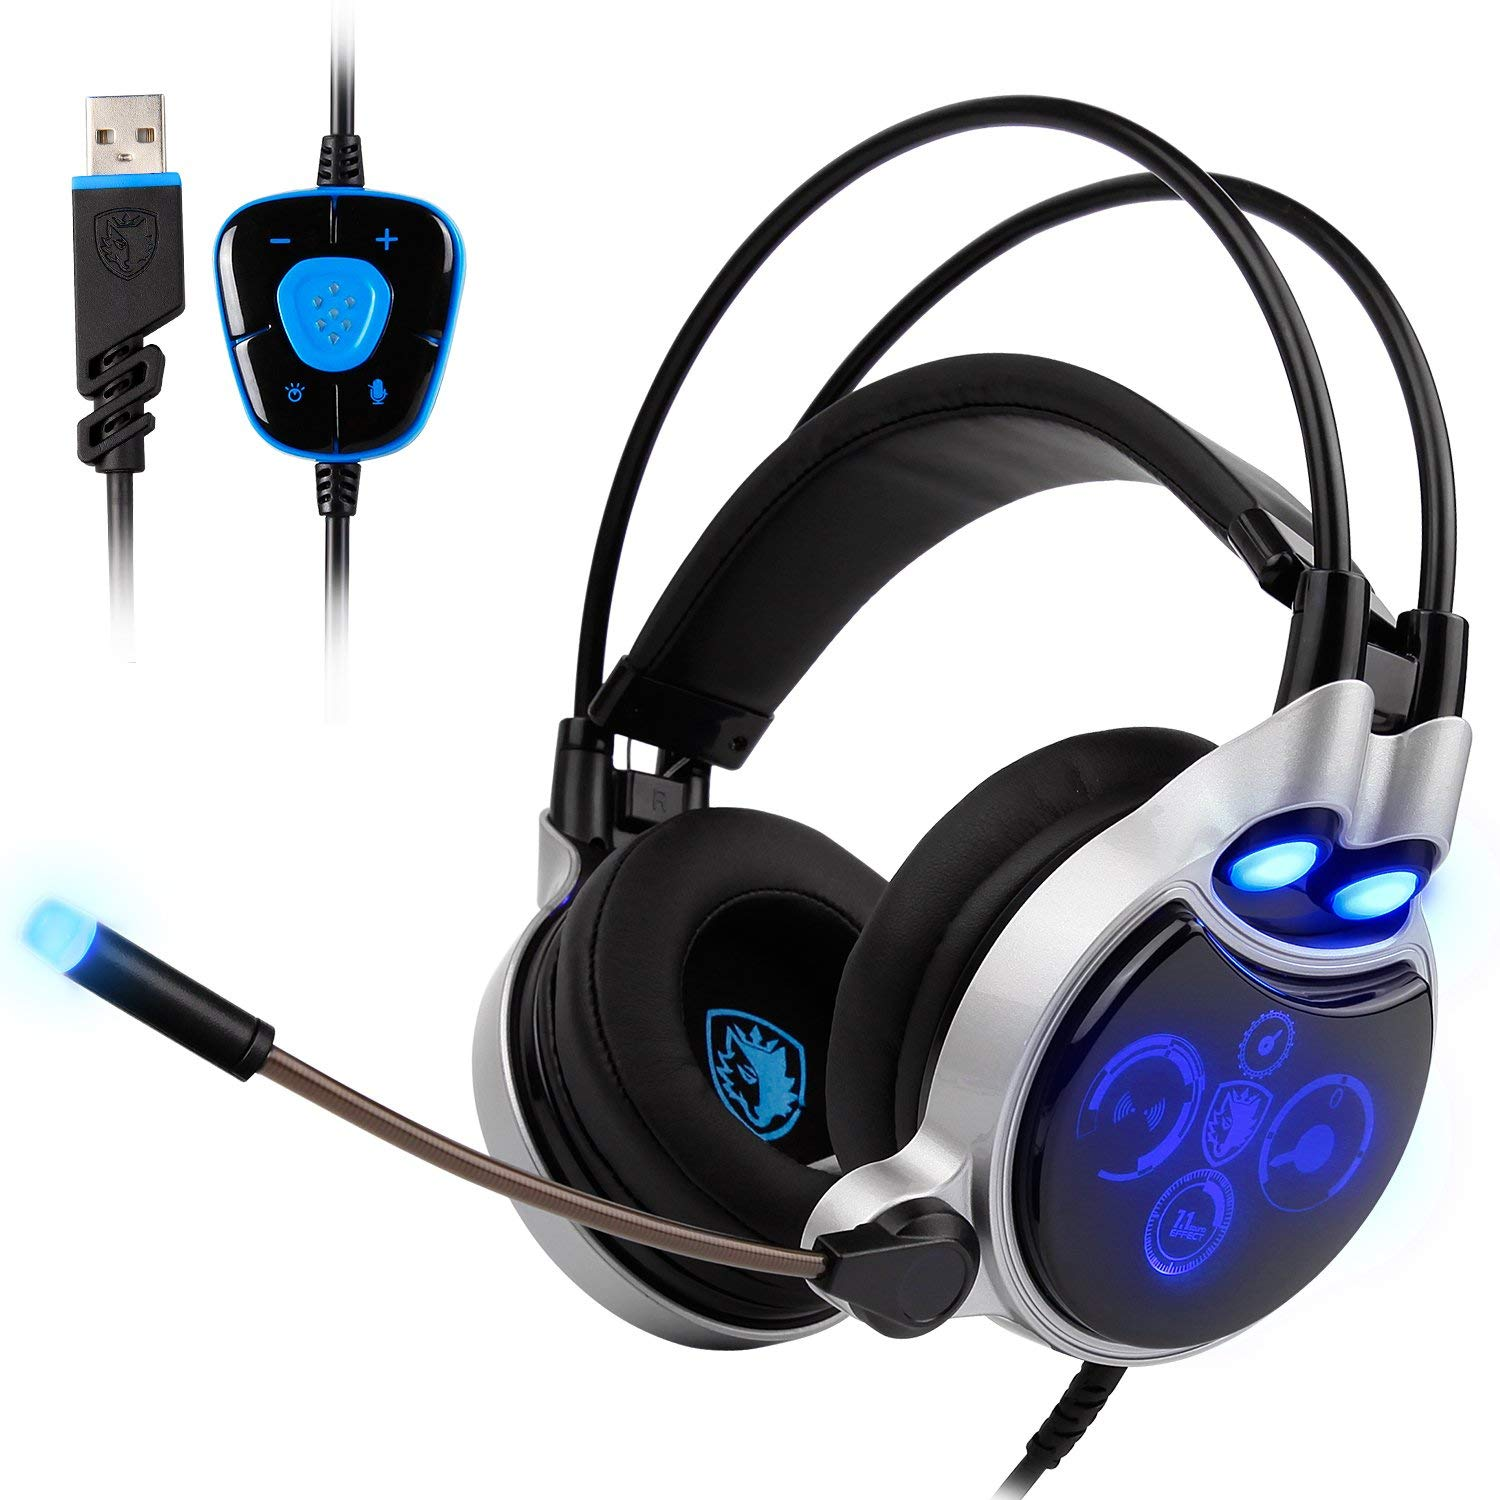 PC Gaming Headset Stereo 7.1 Surround Sound USB Wired Headphones Flexible with Mic,Volume Control,LED Lighting,Noise Cancelling sades a6 usb 7 1 surround sound stereo gaming headset headband over ear headphone with mic volume control led light for pc gamer